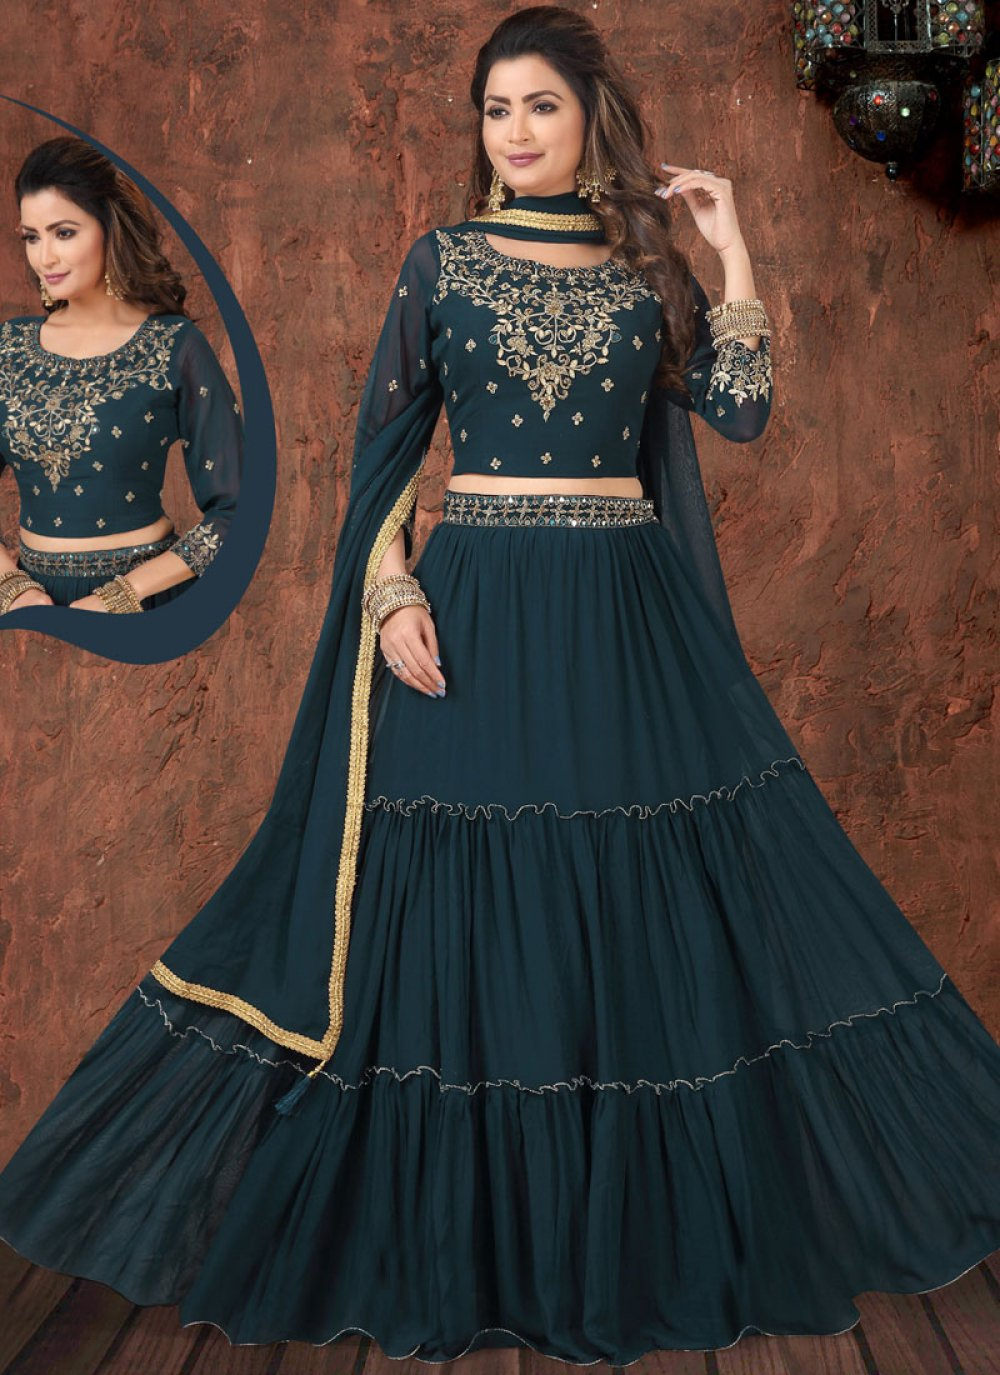 Teal Faux Georgette Readymade Lehenga Choli